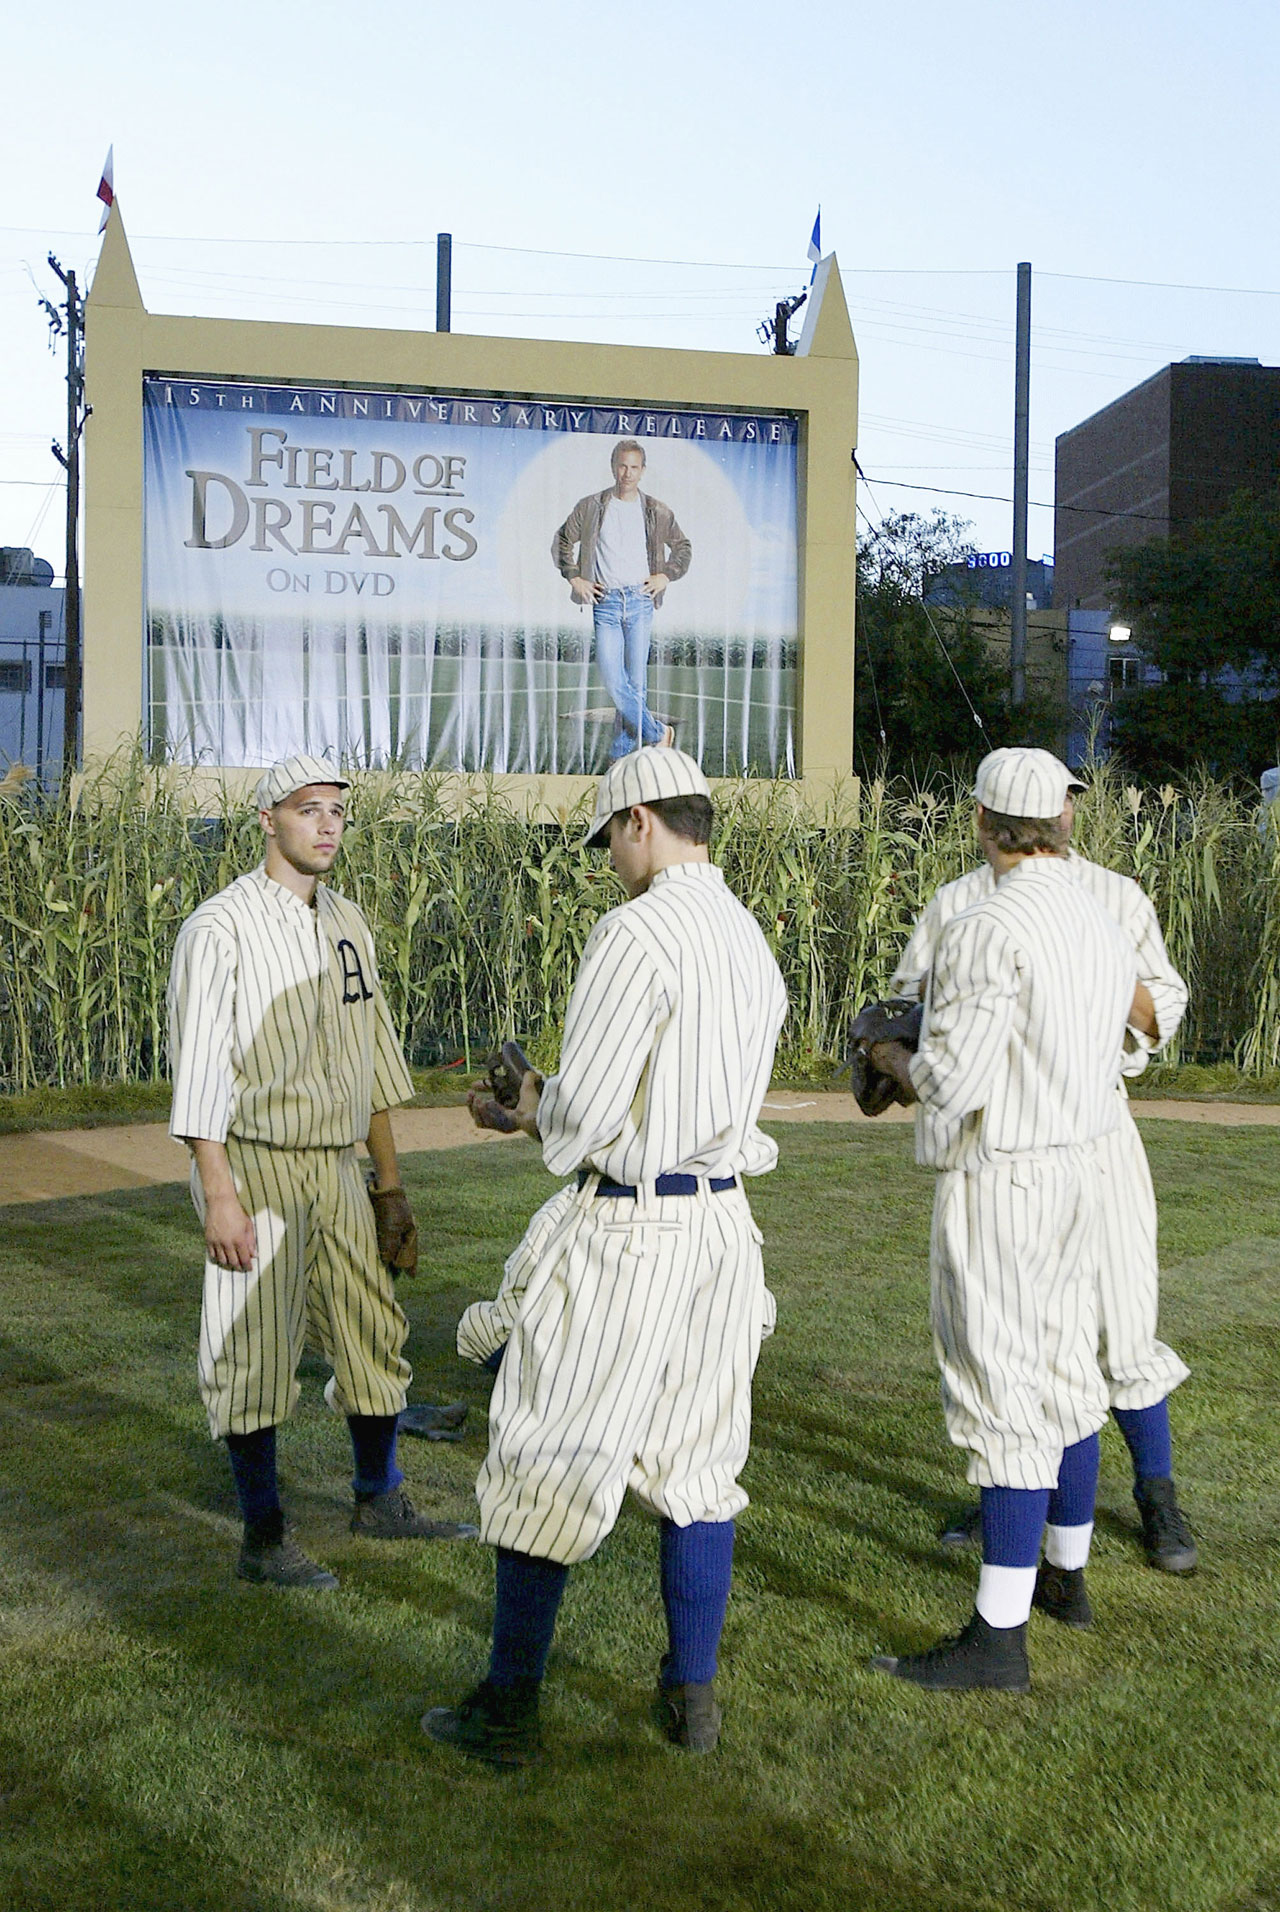 Iowa's Field of Dreams to host 2020 MLB matchup | WTRF